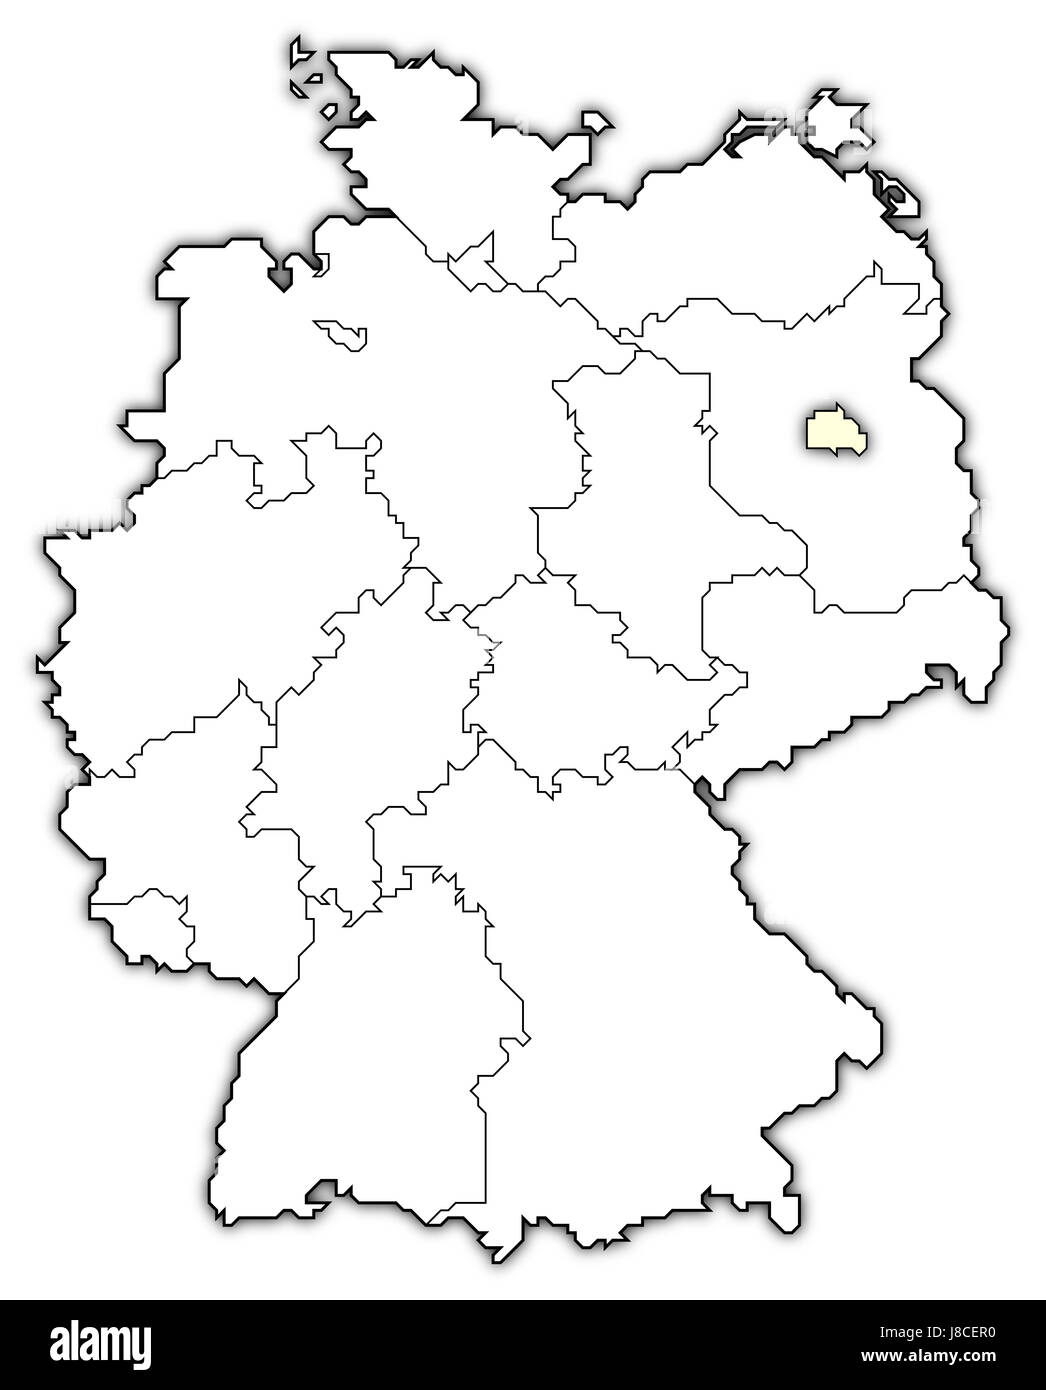 Map Of Germany Berlin Highlighted Stock Photo Alamy